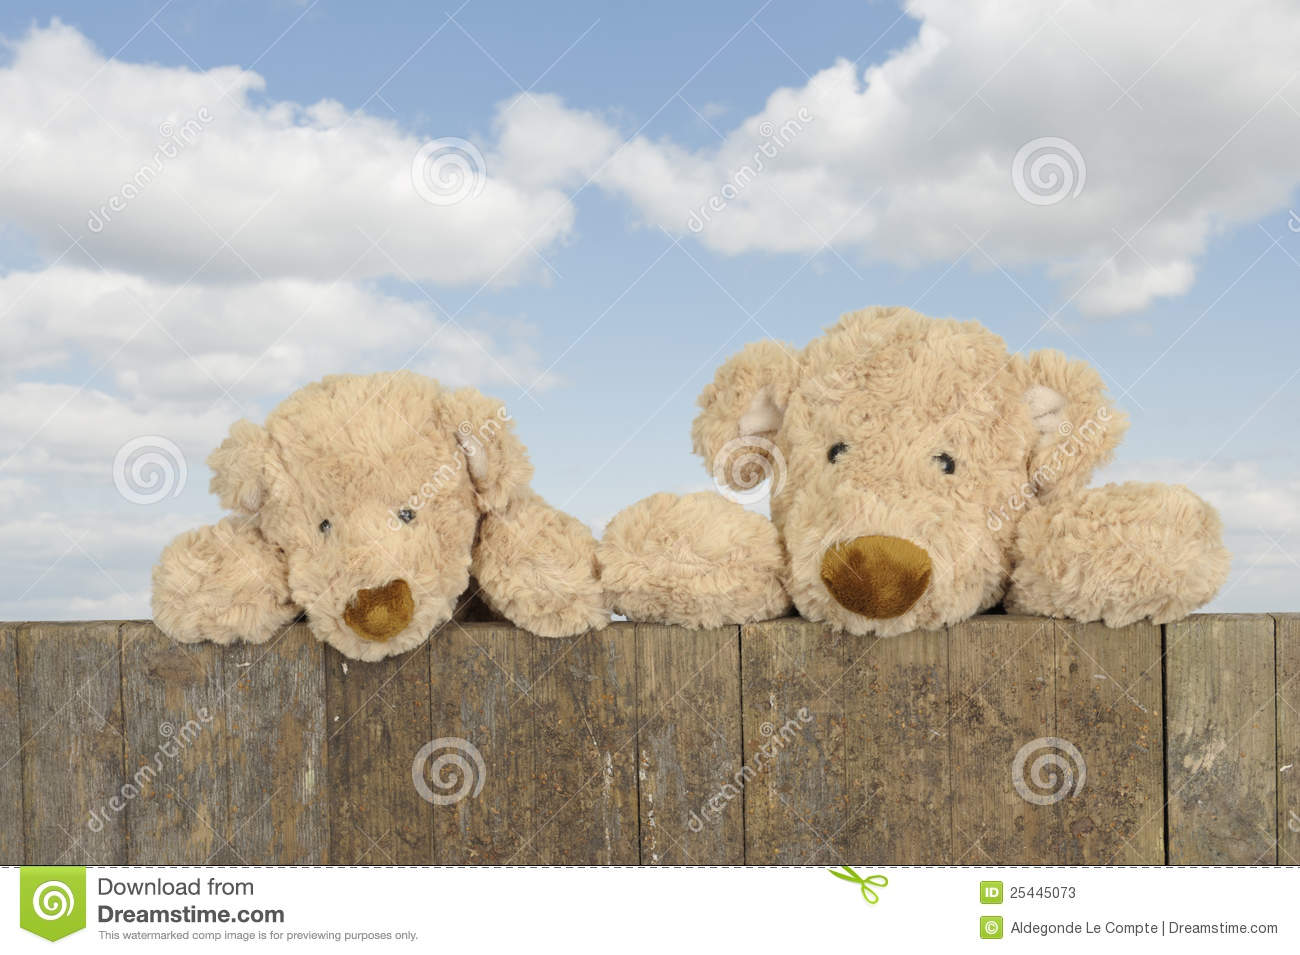 Two teddy bears looking from above a fence